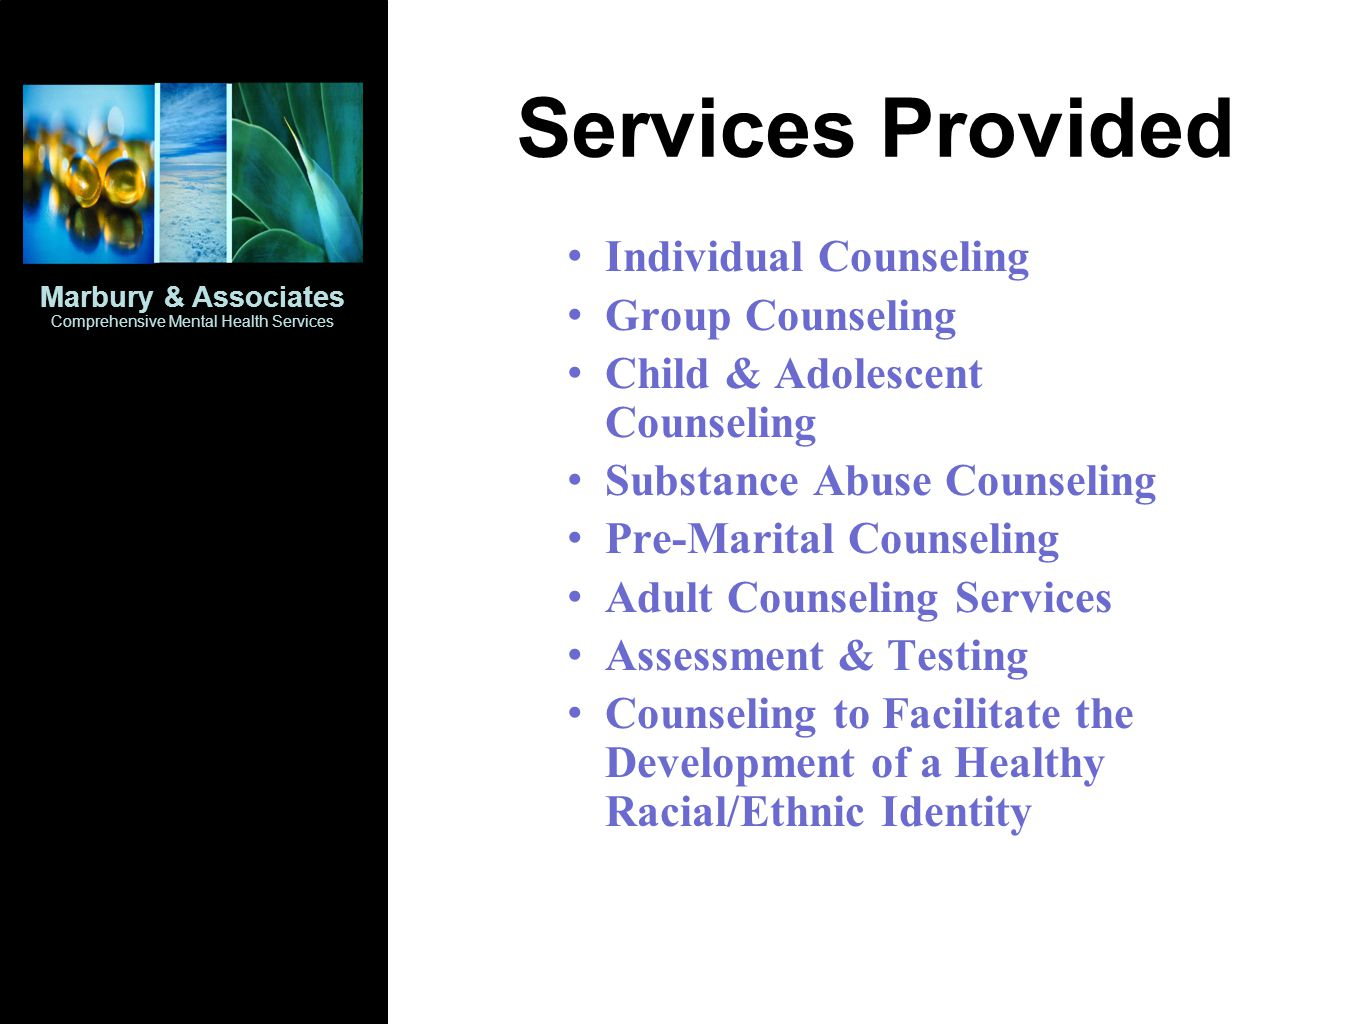 Services Provided Individual Counseling Group Counseling Child & Adolescent Counseling Substance Abuse Counseling Pre-Marital Counseling Adult Counseling Services Assessment & Testing Counseling to Facilitate the Development of a Healthy Racial/Ethnic Identity Marbury & Associates Comprehensive Mental Health Services